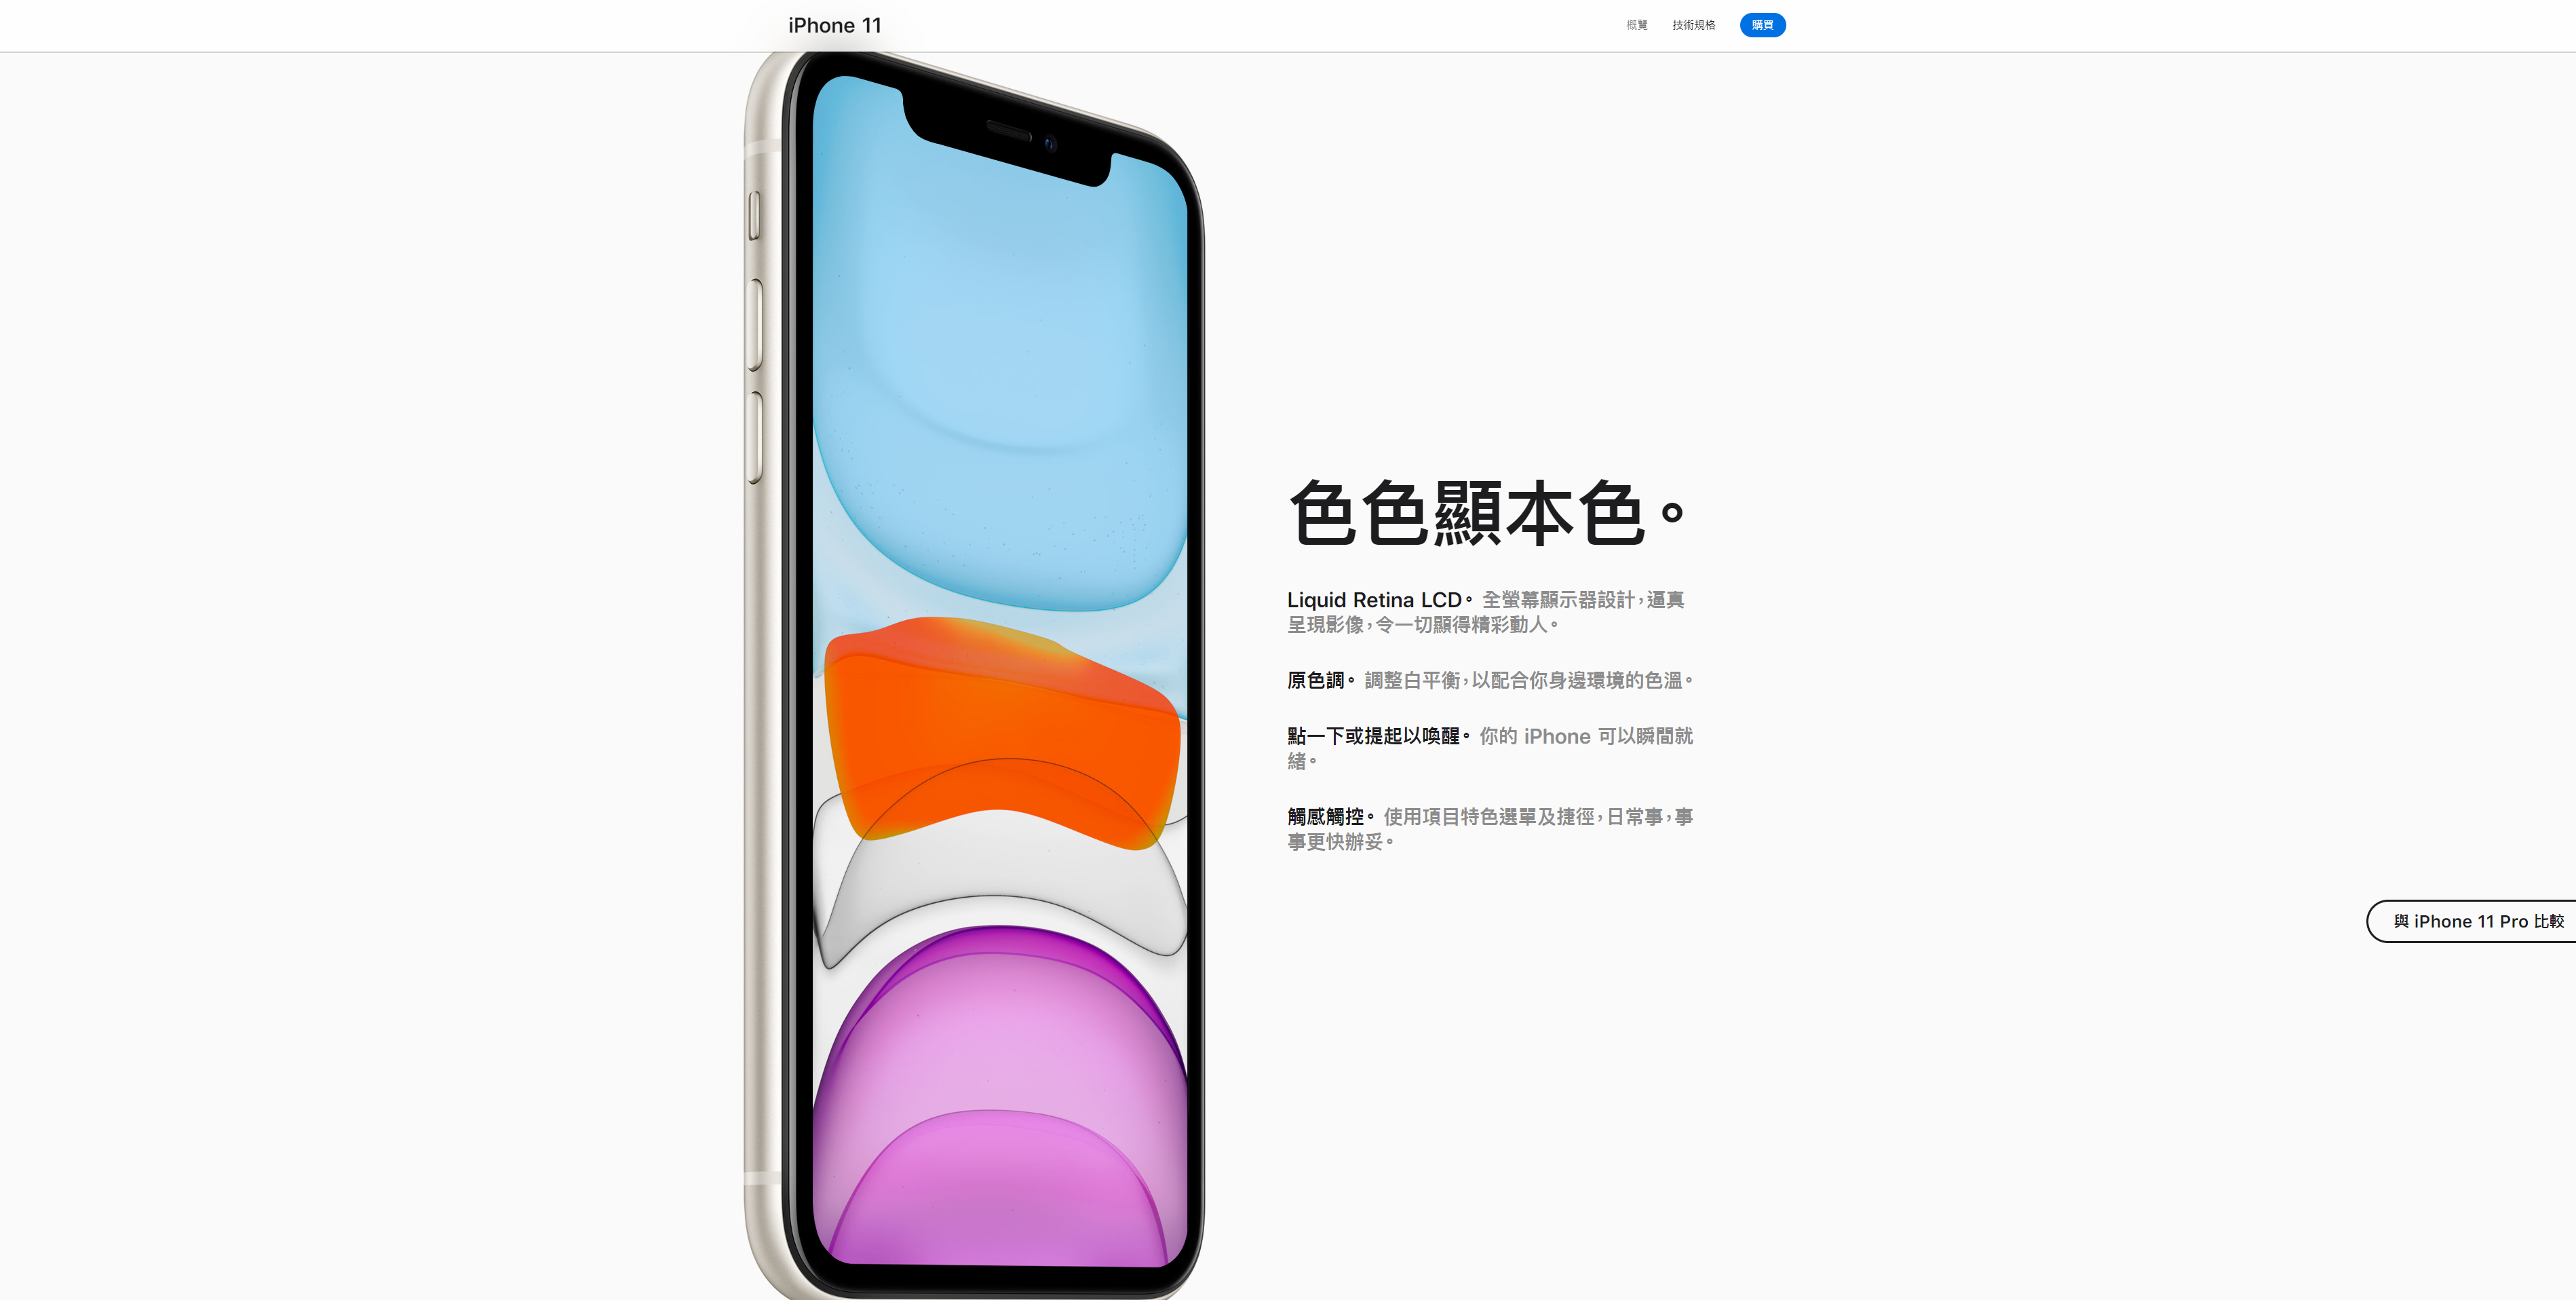 The landing page of Apple introducing iPhone 11